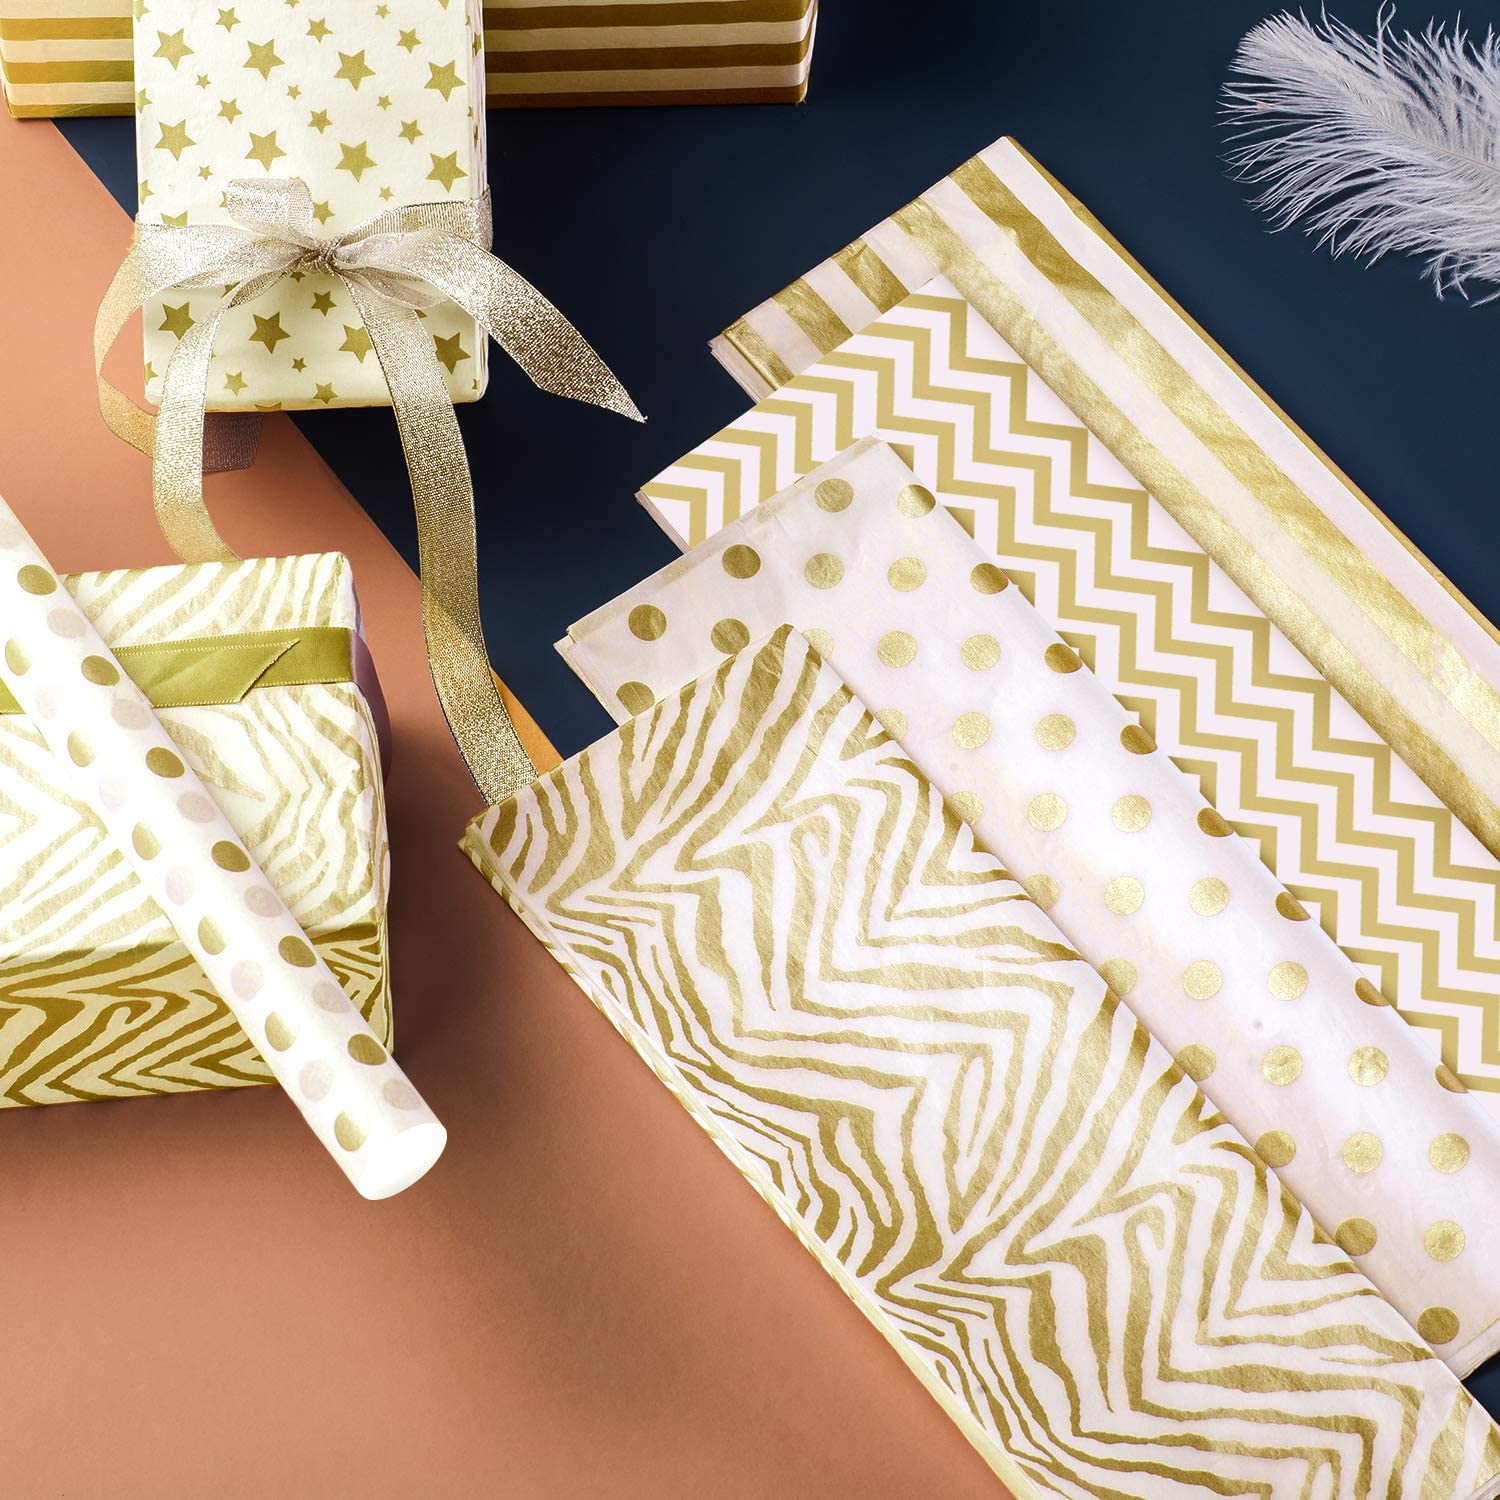 Free Amazon Promo Code 2020 for Gold Tissue Paper Gift Wrapping